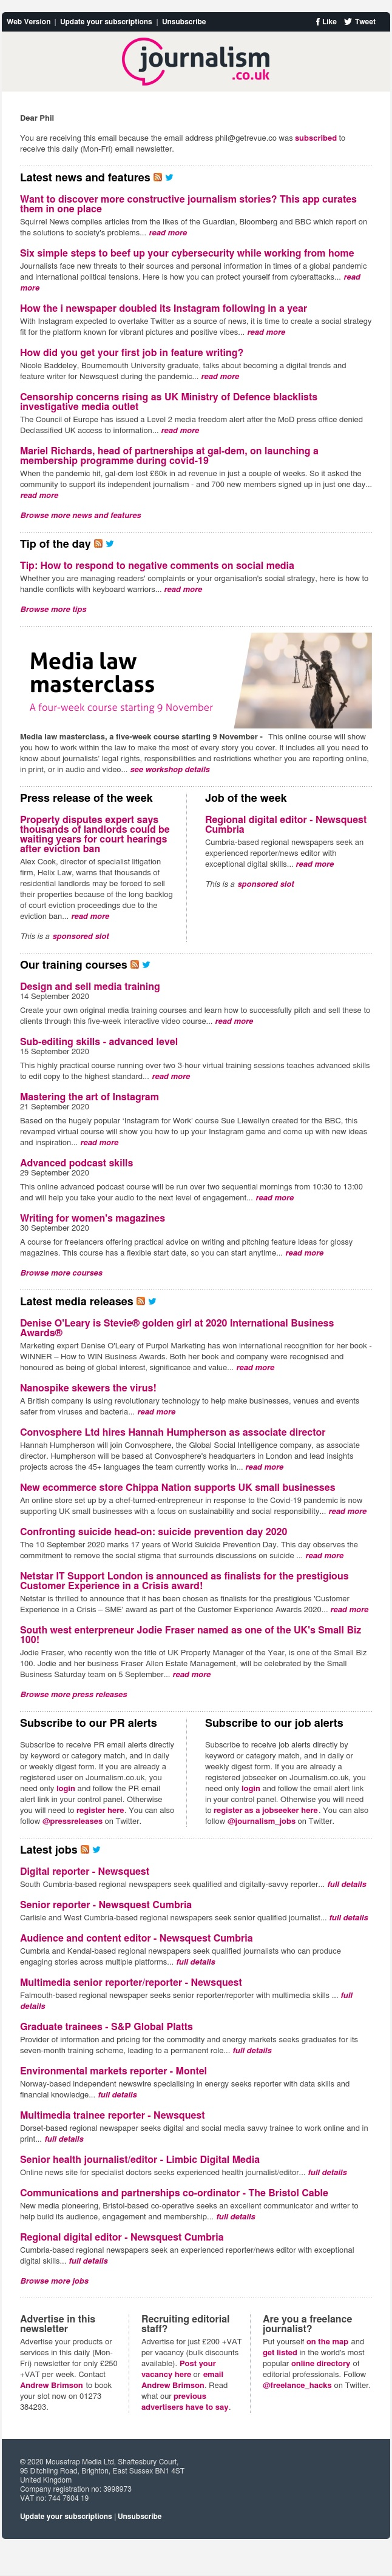 Journalism news: Want to discover more constructive journalism stories? This app curates them in one place | 22 jobs